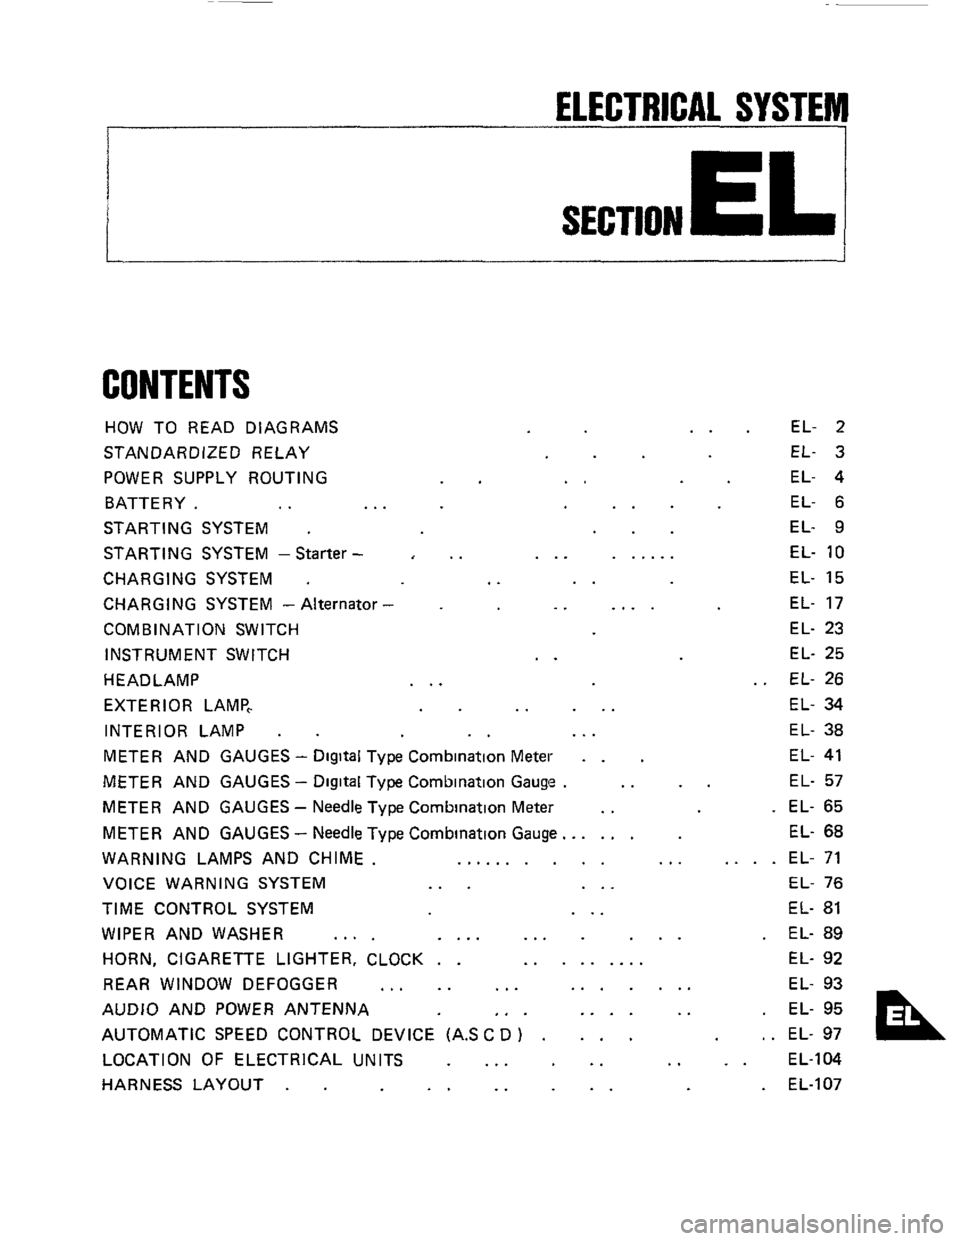 NISSAN 300ZX 1984 Z31 Electrical System Workshop Manual, Page 1